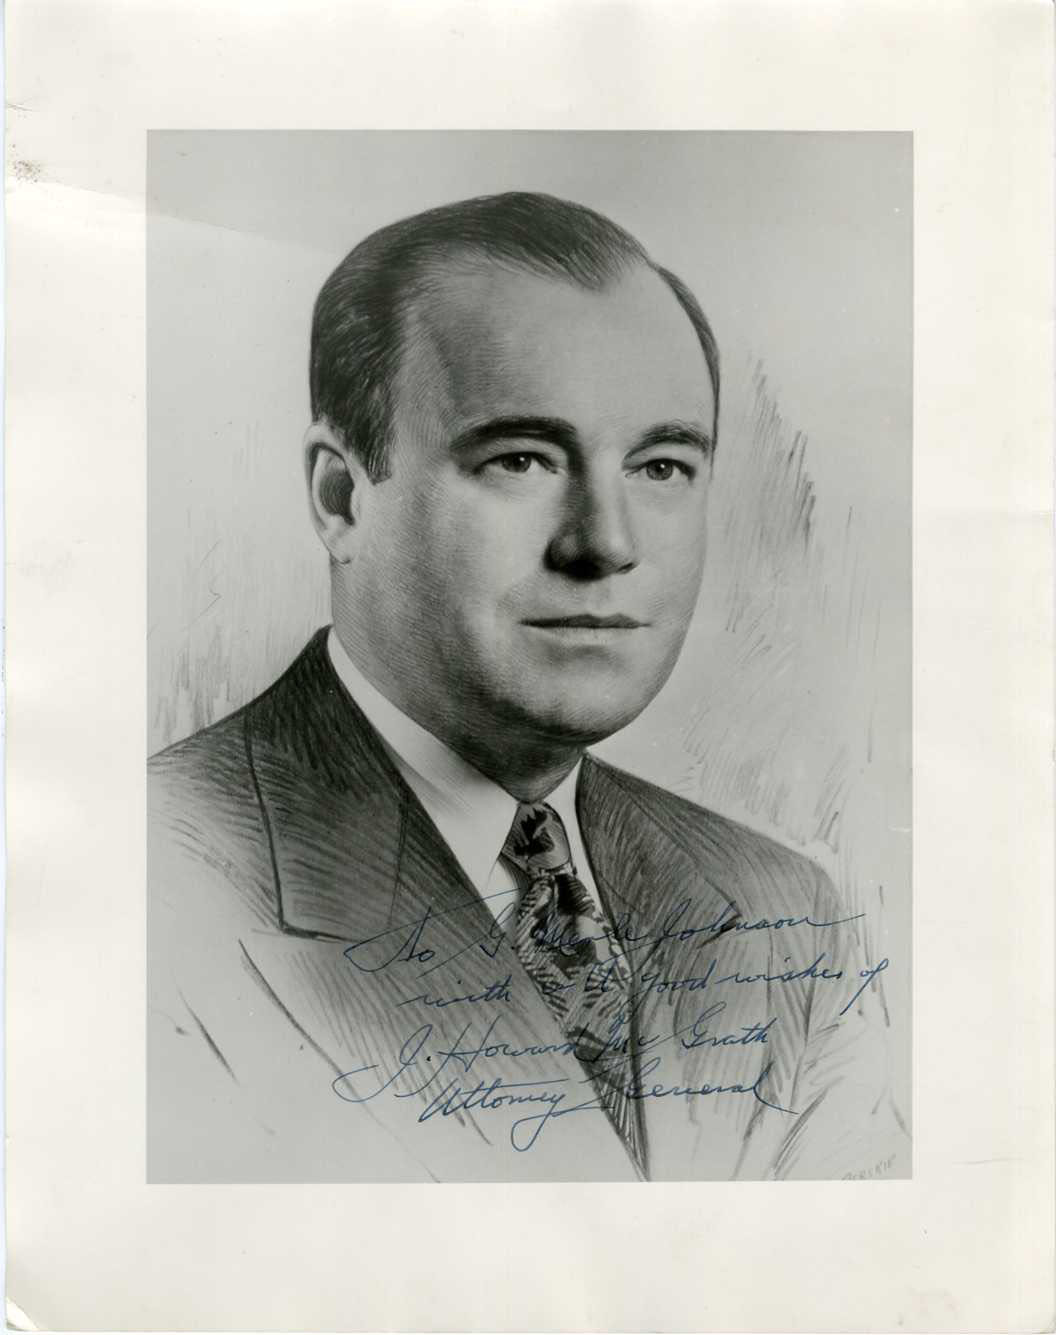 J. HOWARD McGRATH (ATTORNEY GENERAL) - SIGNED POLITICAL PRINTED PHOTO c1950s